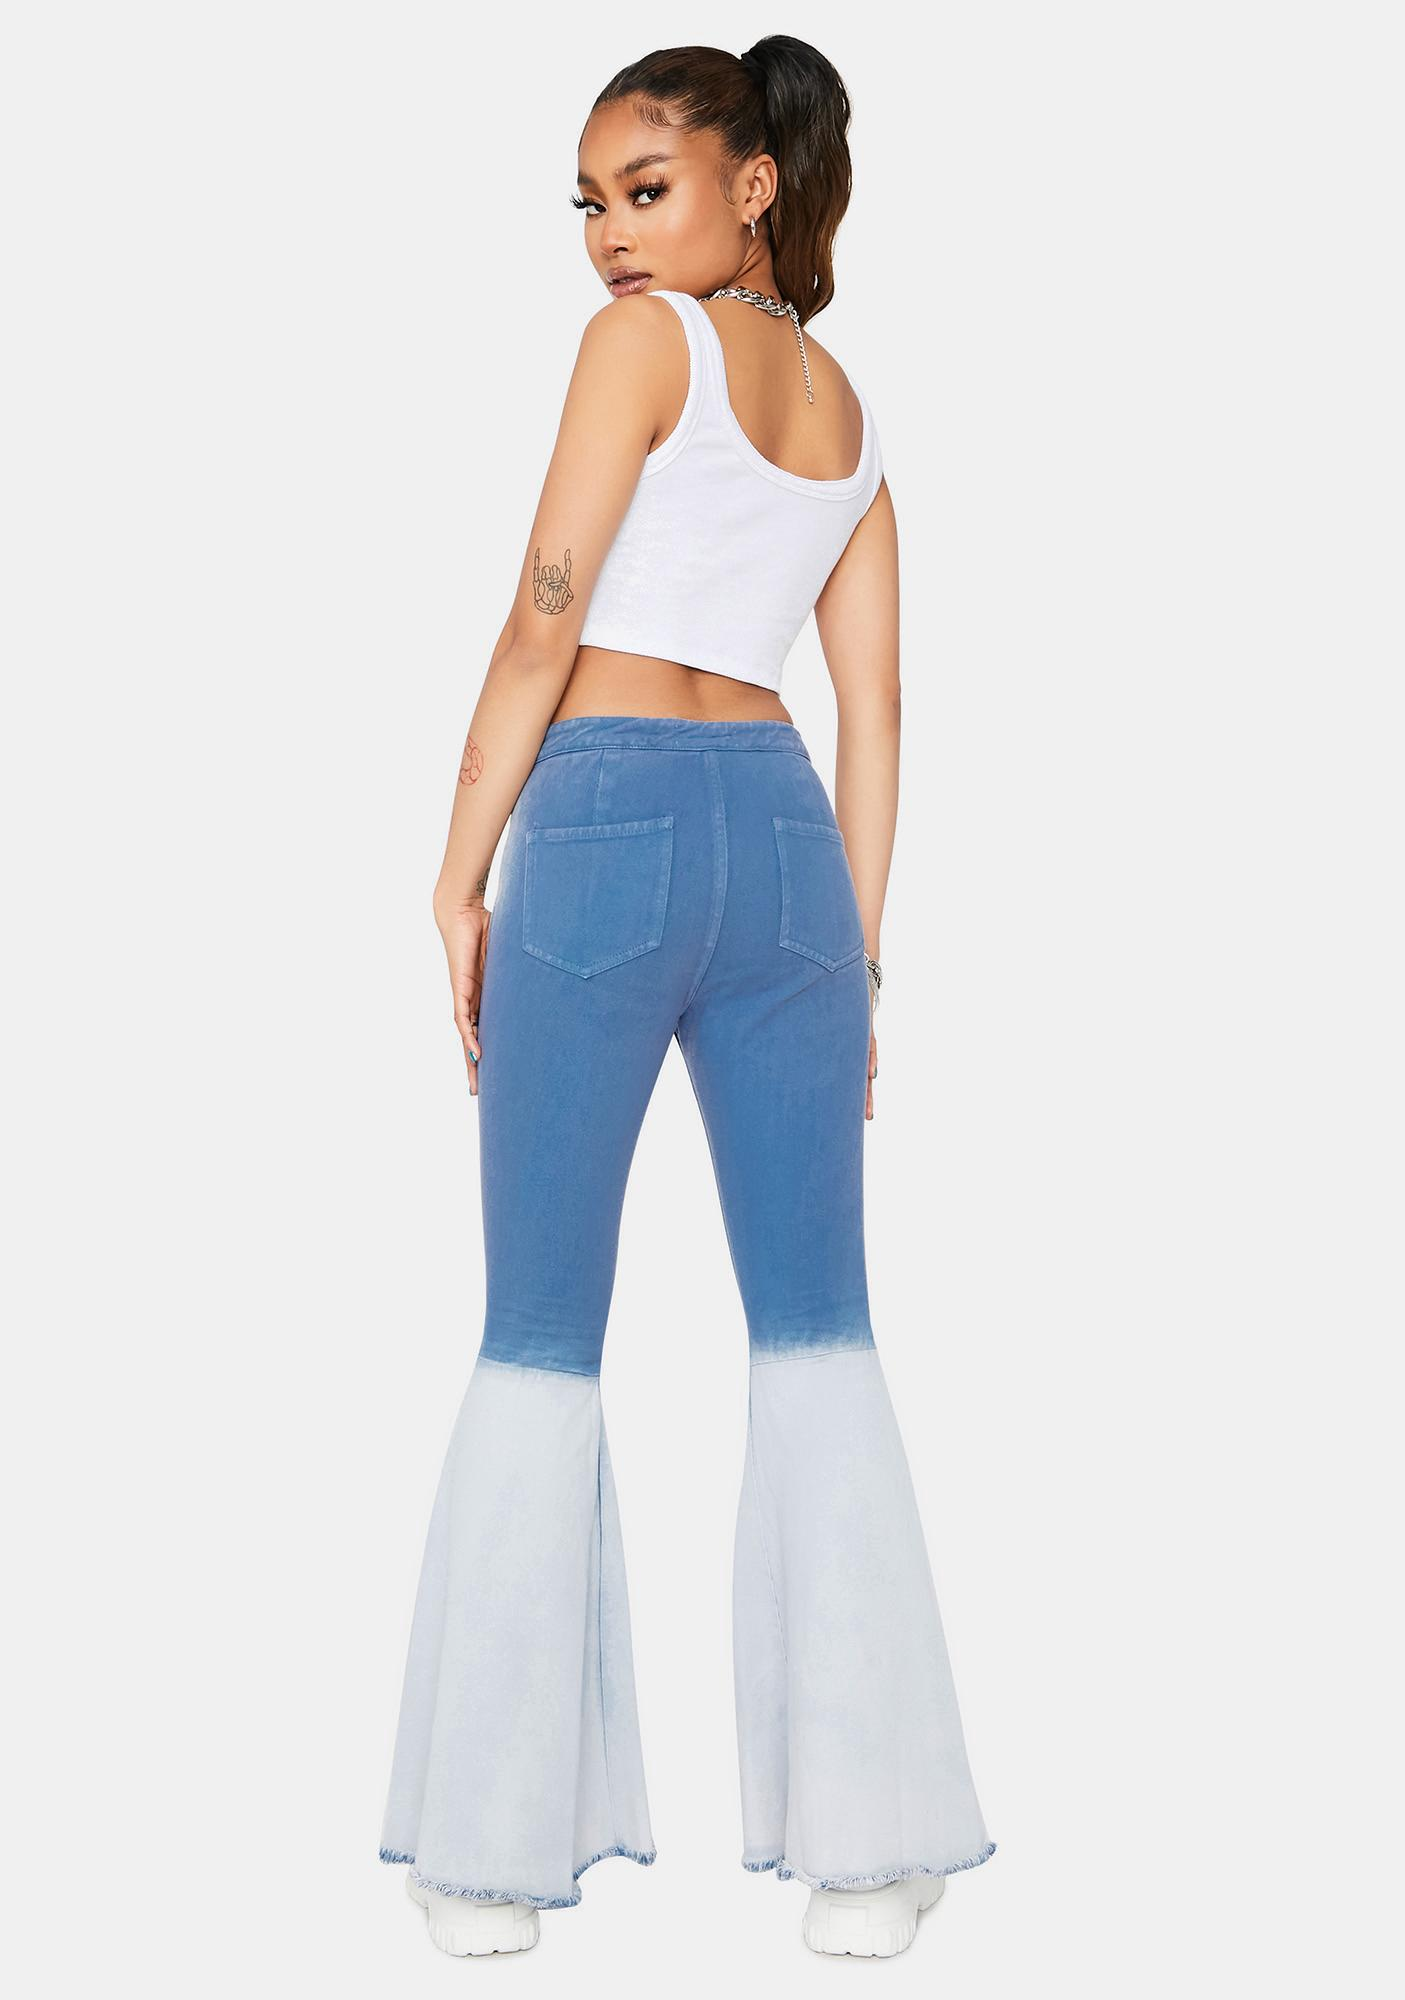 Groove Thang Tie Dye Flare Jeans